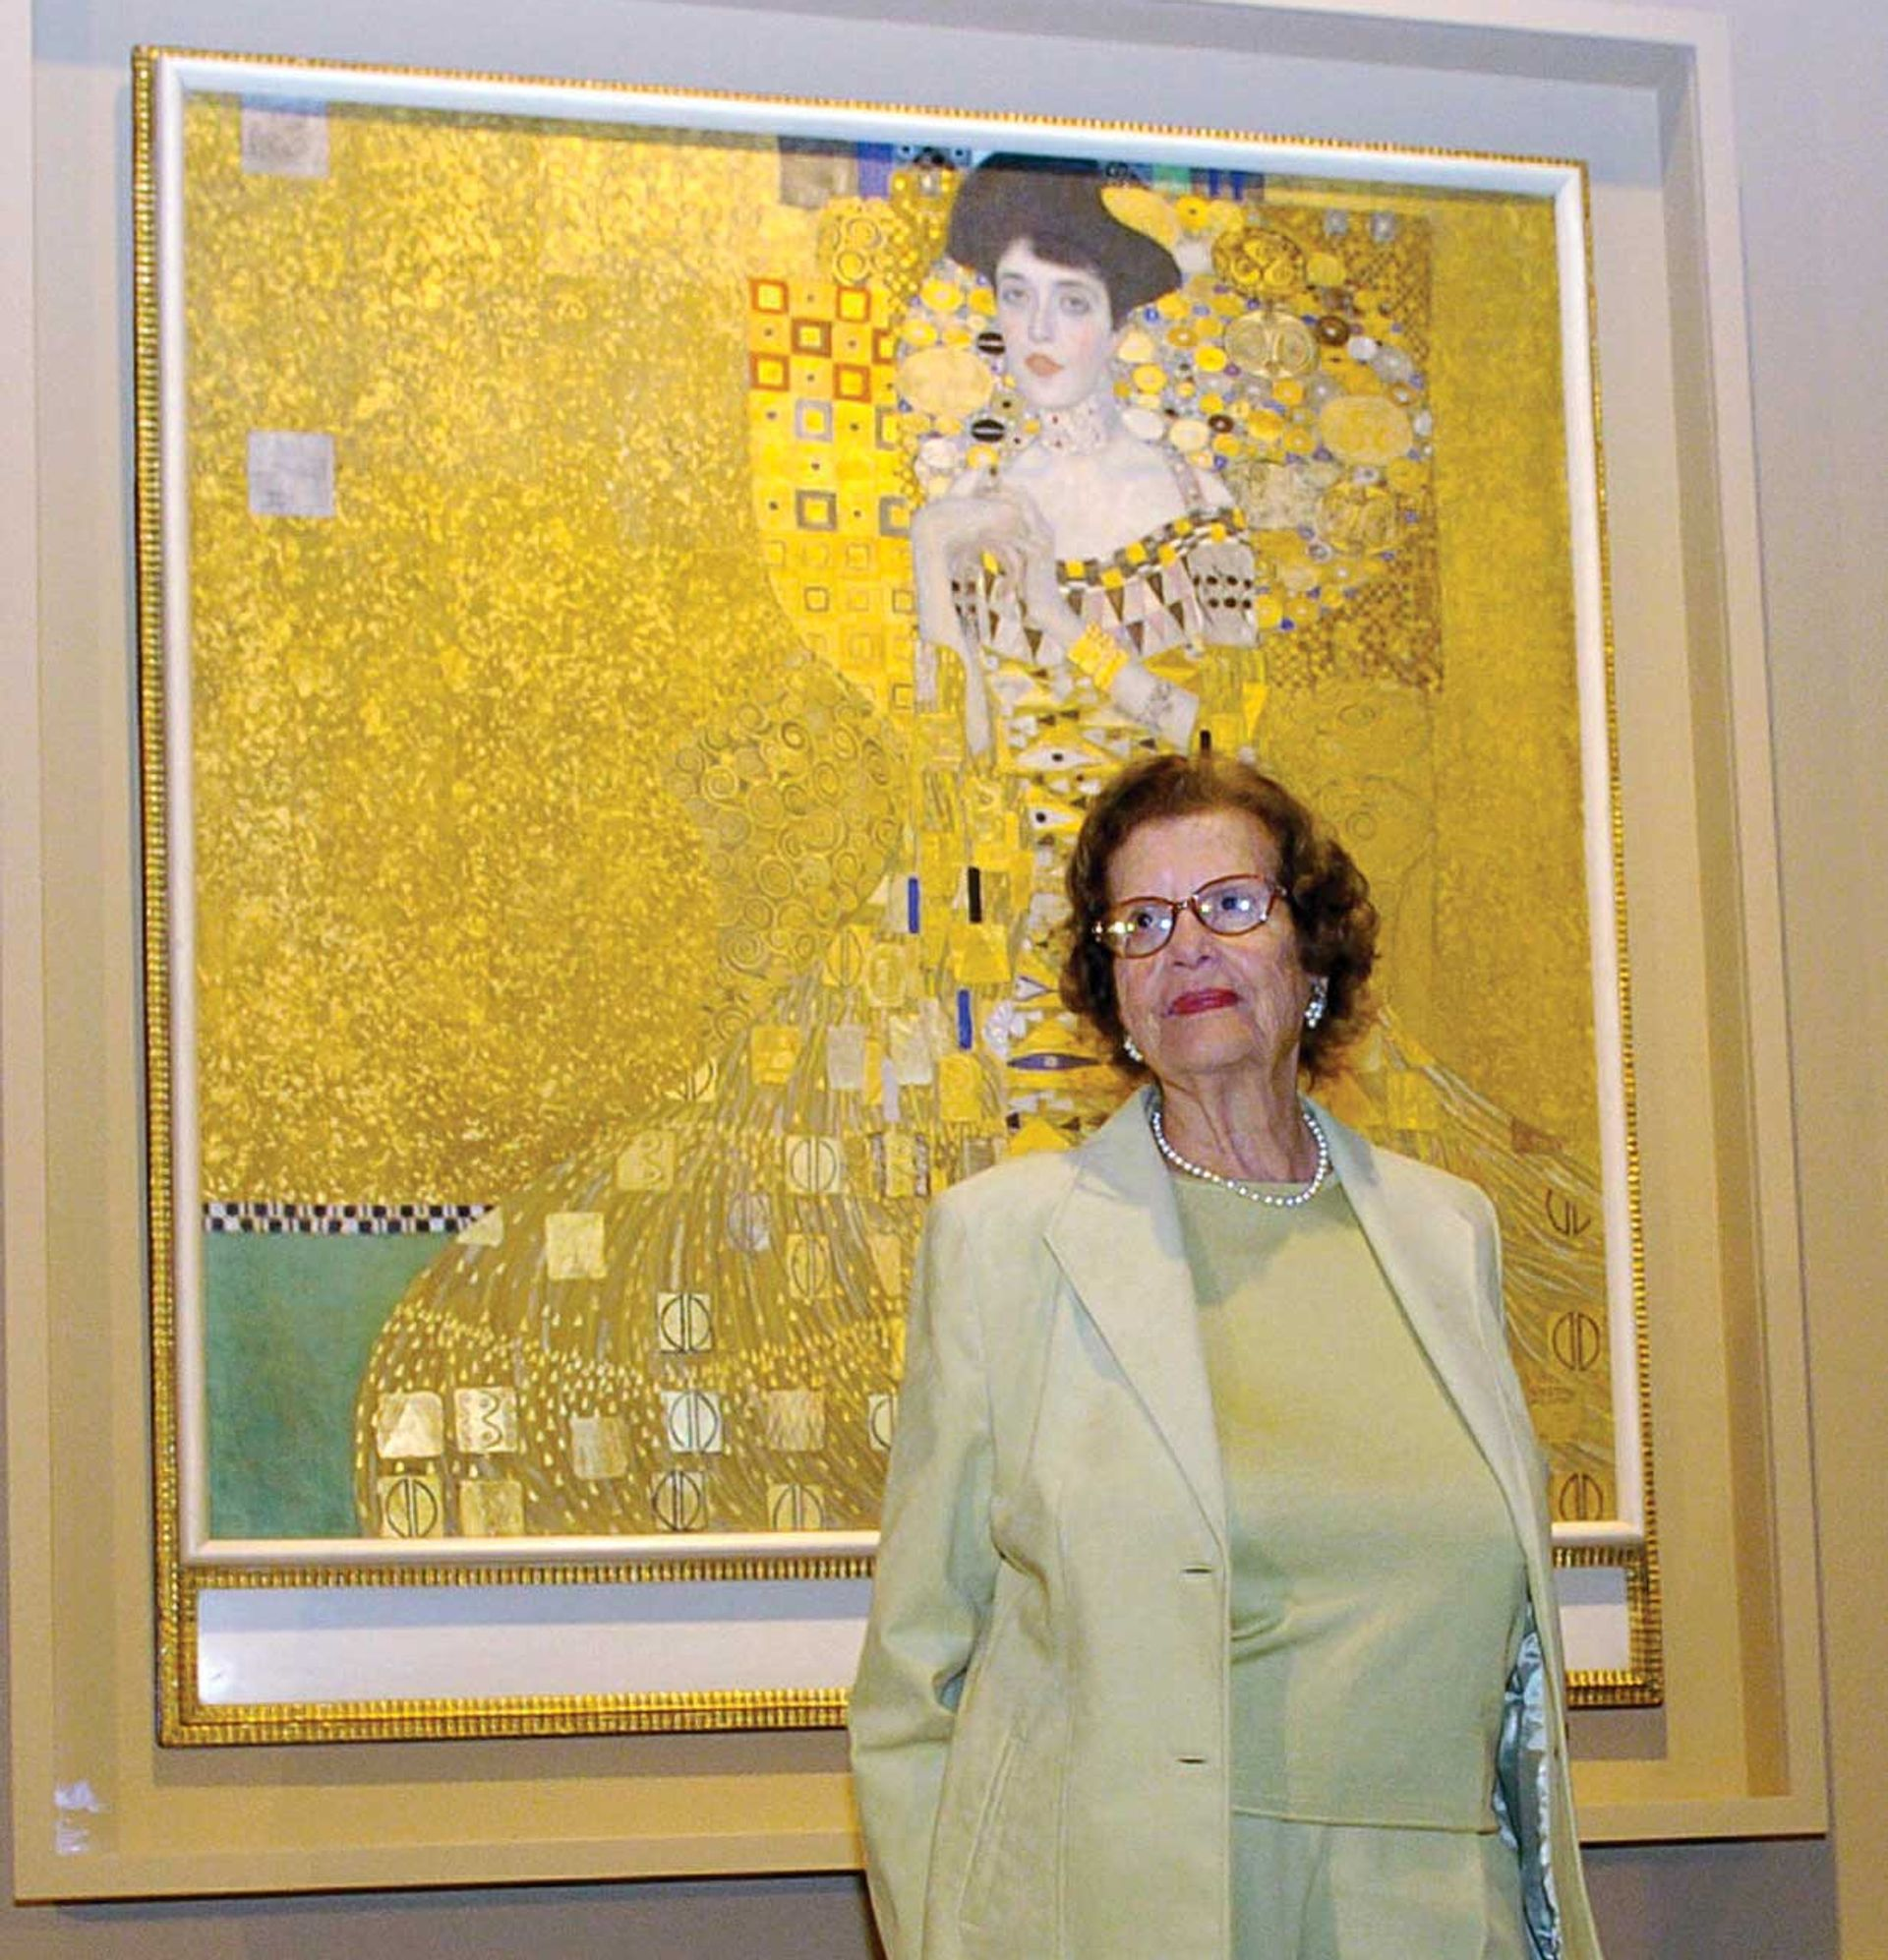 Maria Altmann took on the Austrian government in her bid to have Klimt's 1907 painting Adele Bloch-Bauer I and other works looted by the Nazis returned to her family Photo: Chris Pizzello